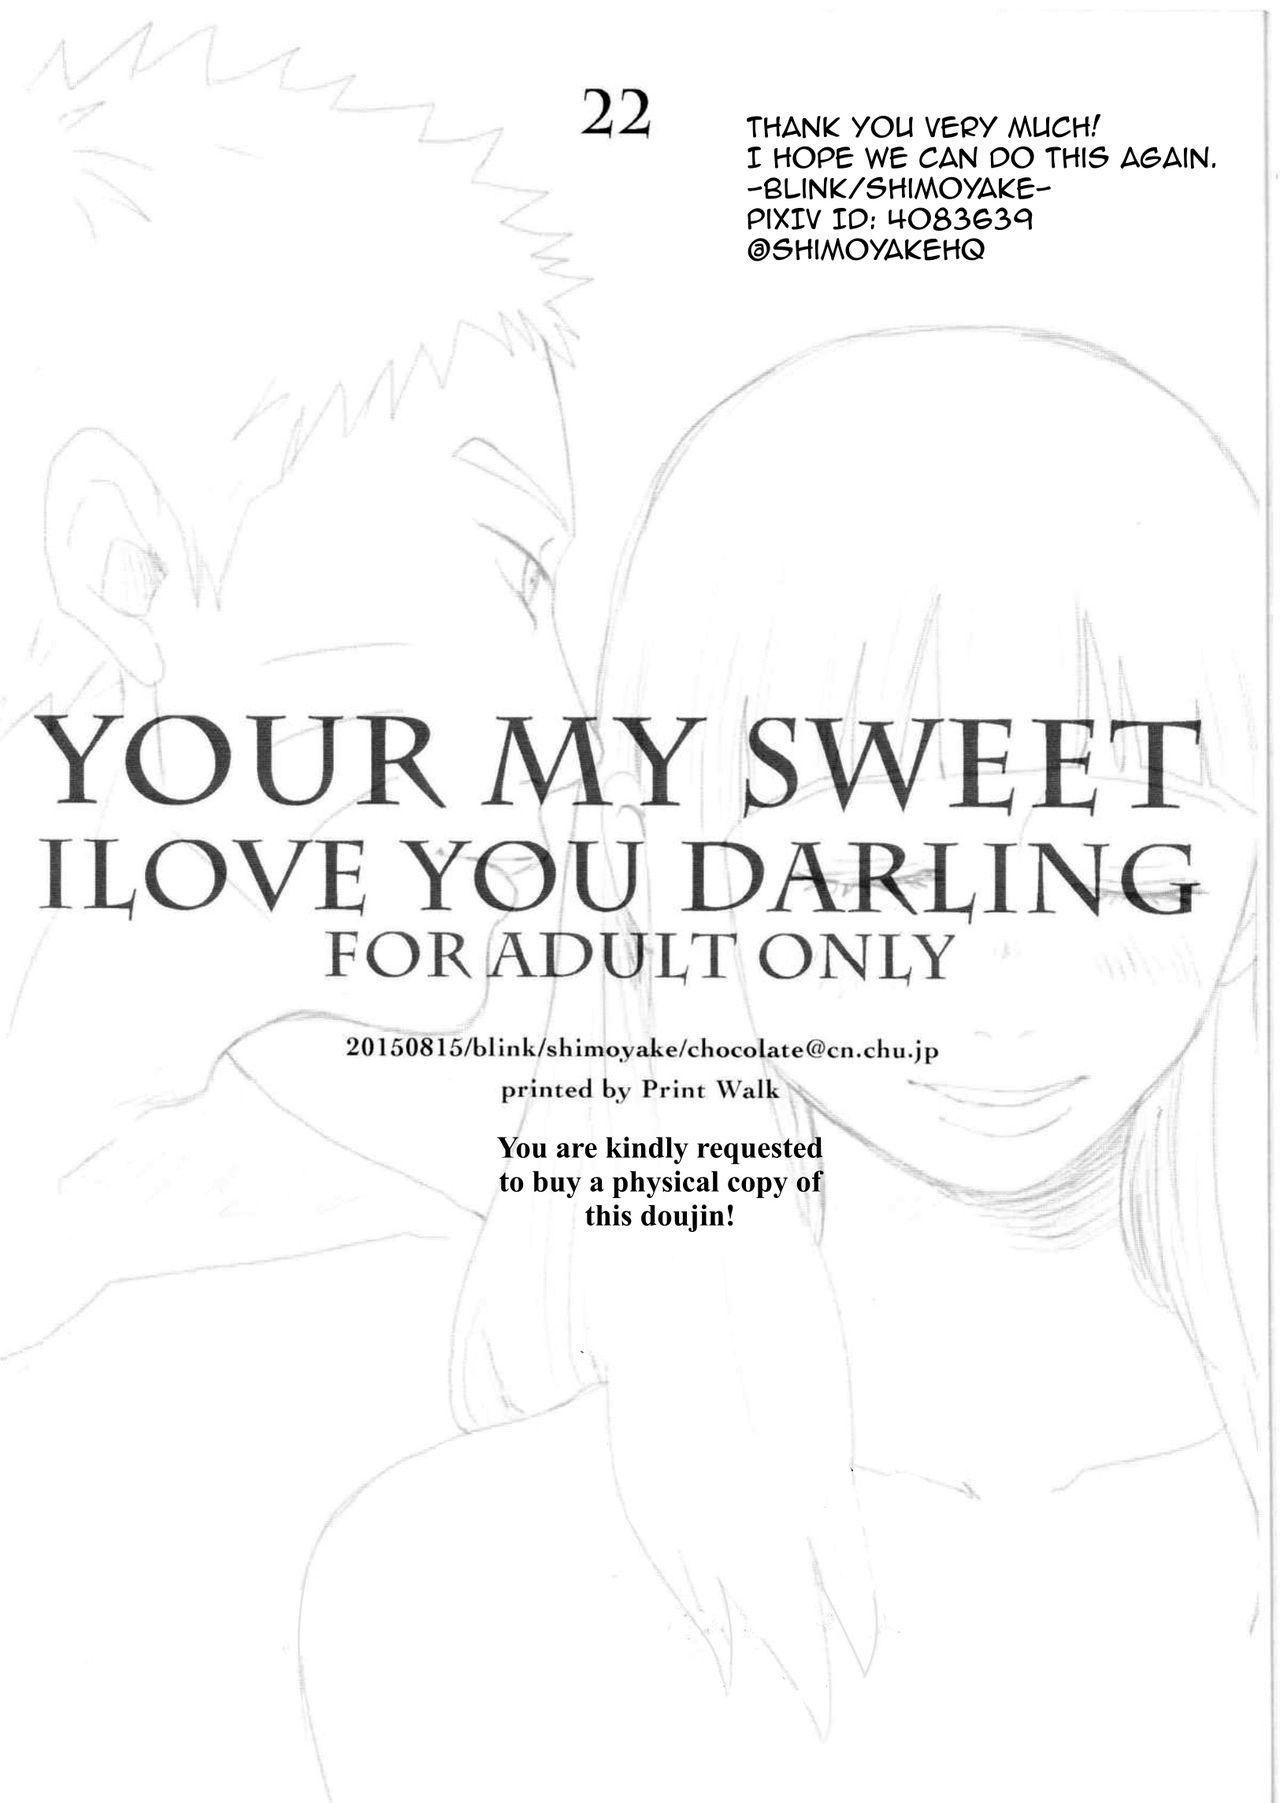 YOUR MY SWEET - I LOVE YOU DARLING 22